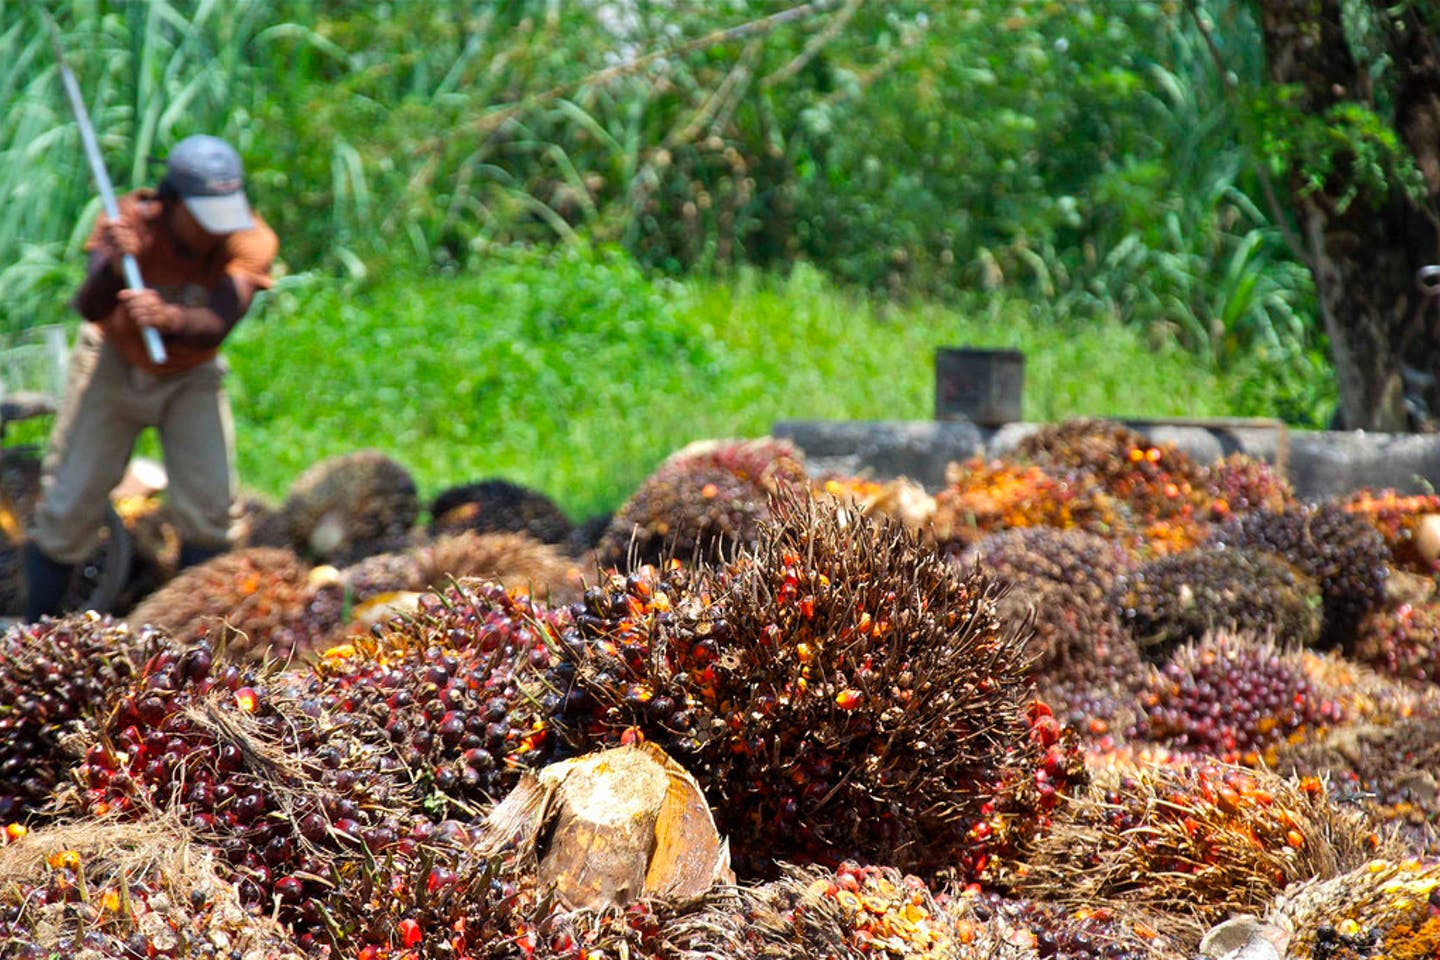 A harvest of palm oil fruit